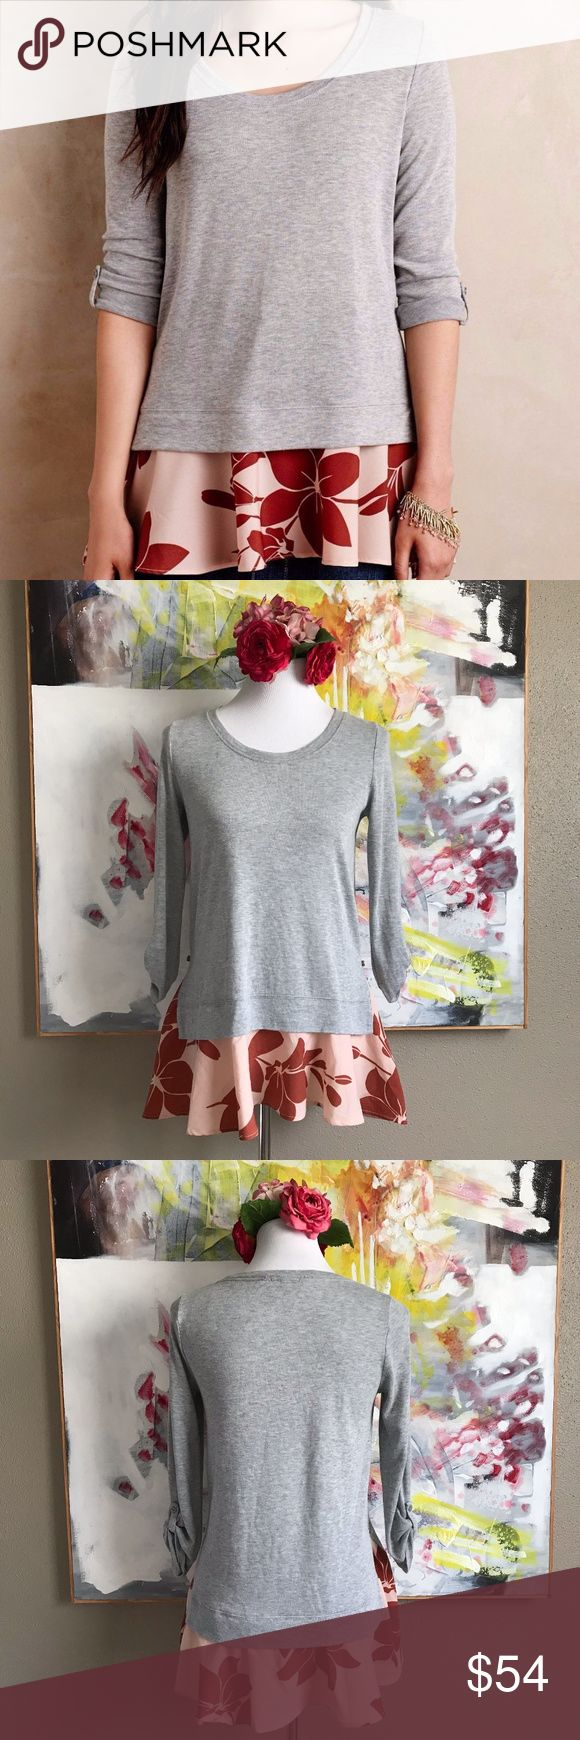 Anthropologie Little Yellow Button Layered Top, S 3/4 sleeve. Layered Swing Tee Sweater. Gray and peach. Size Small.  ▪️Pit to Pit: TBA ▪️Length: TBA ▪️Condition: Pre-Owned. Excellent condition. Anthropologie Tops Blouses